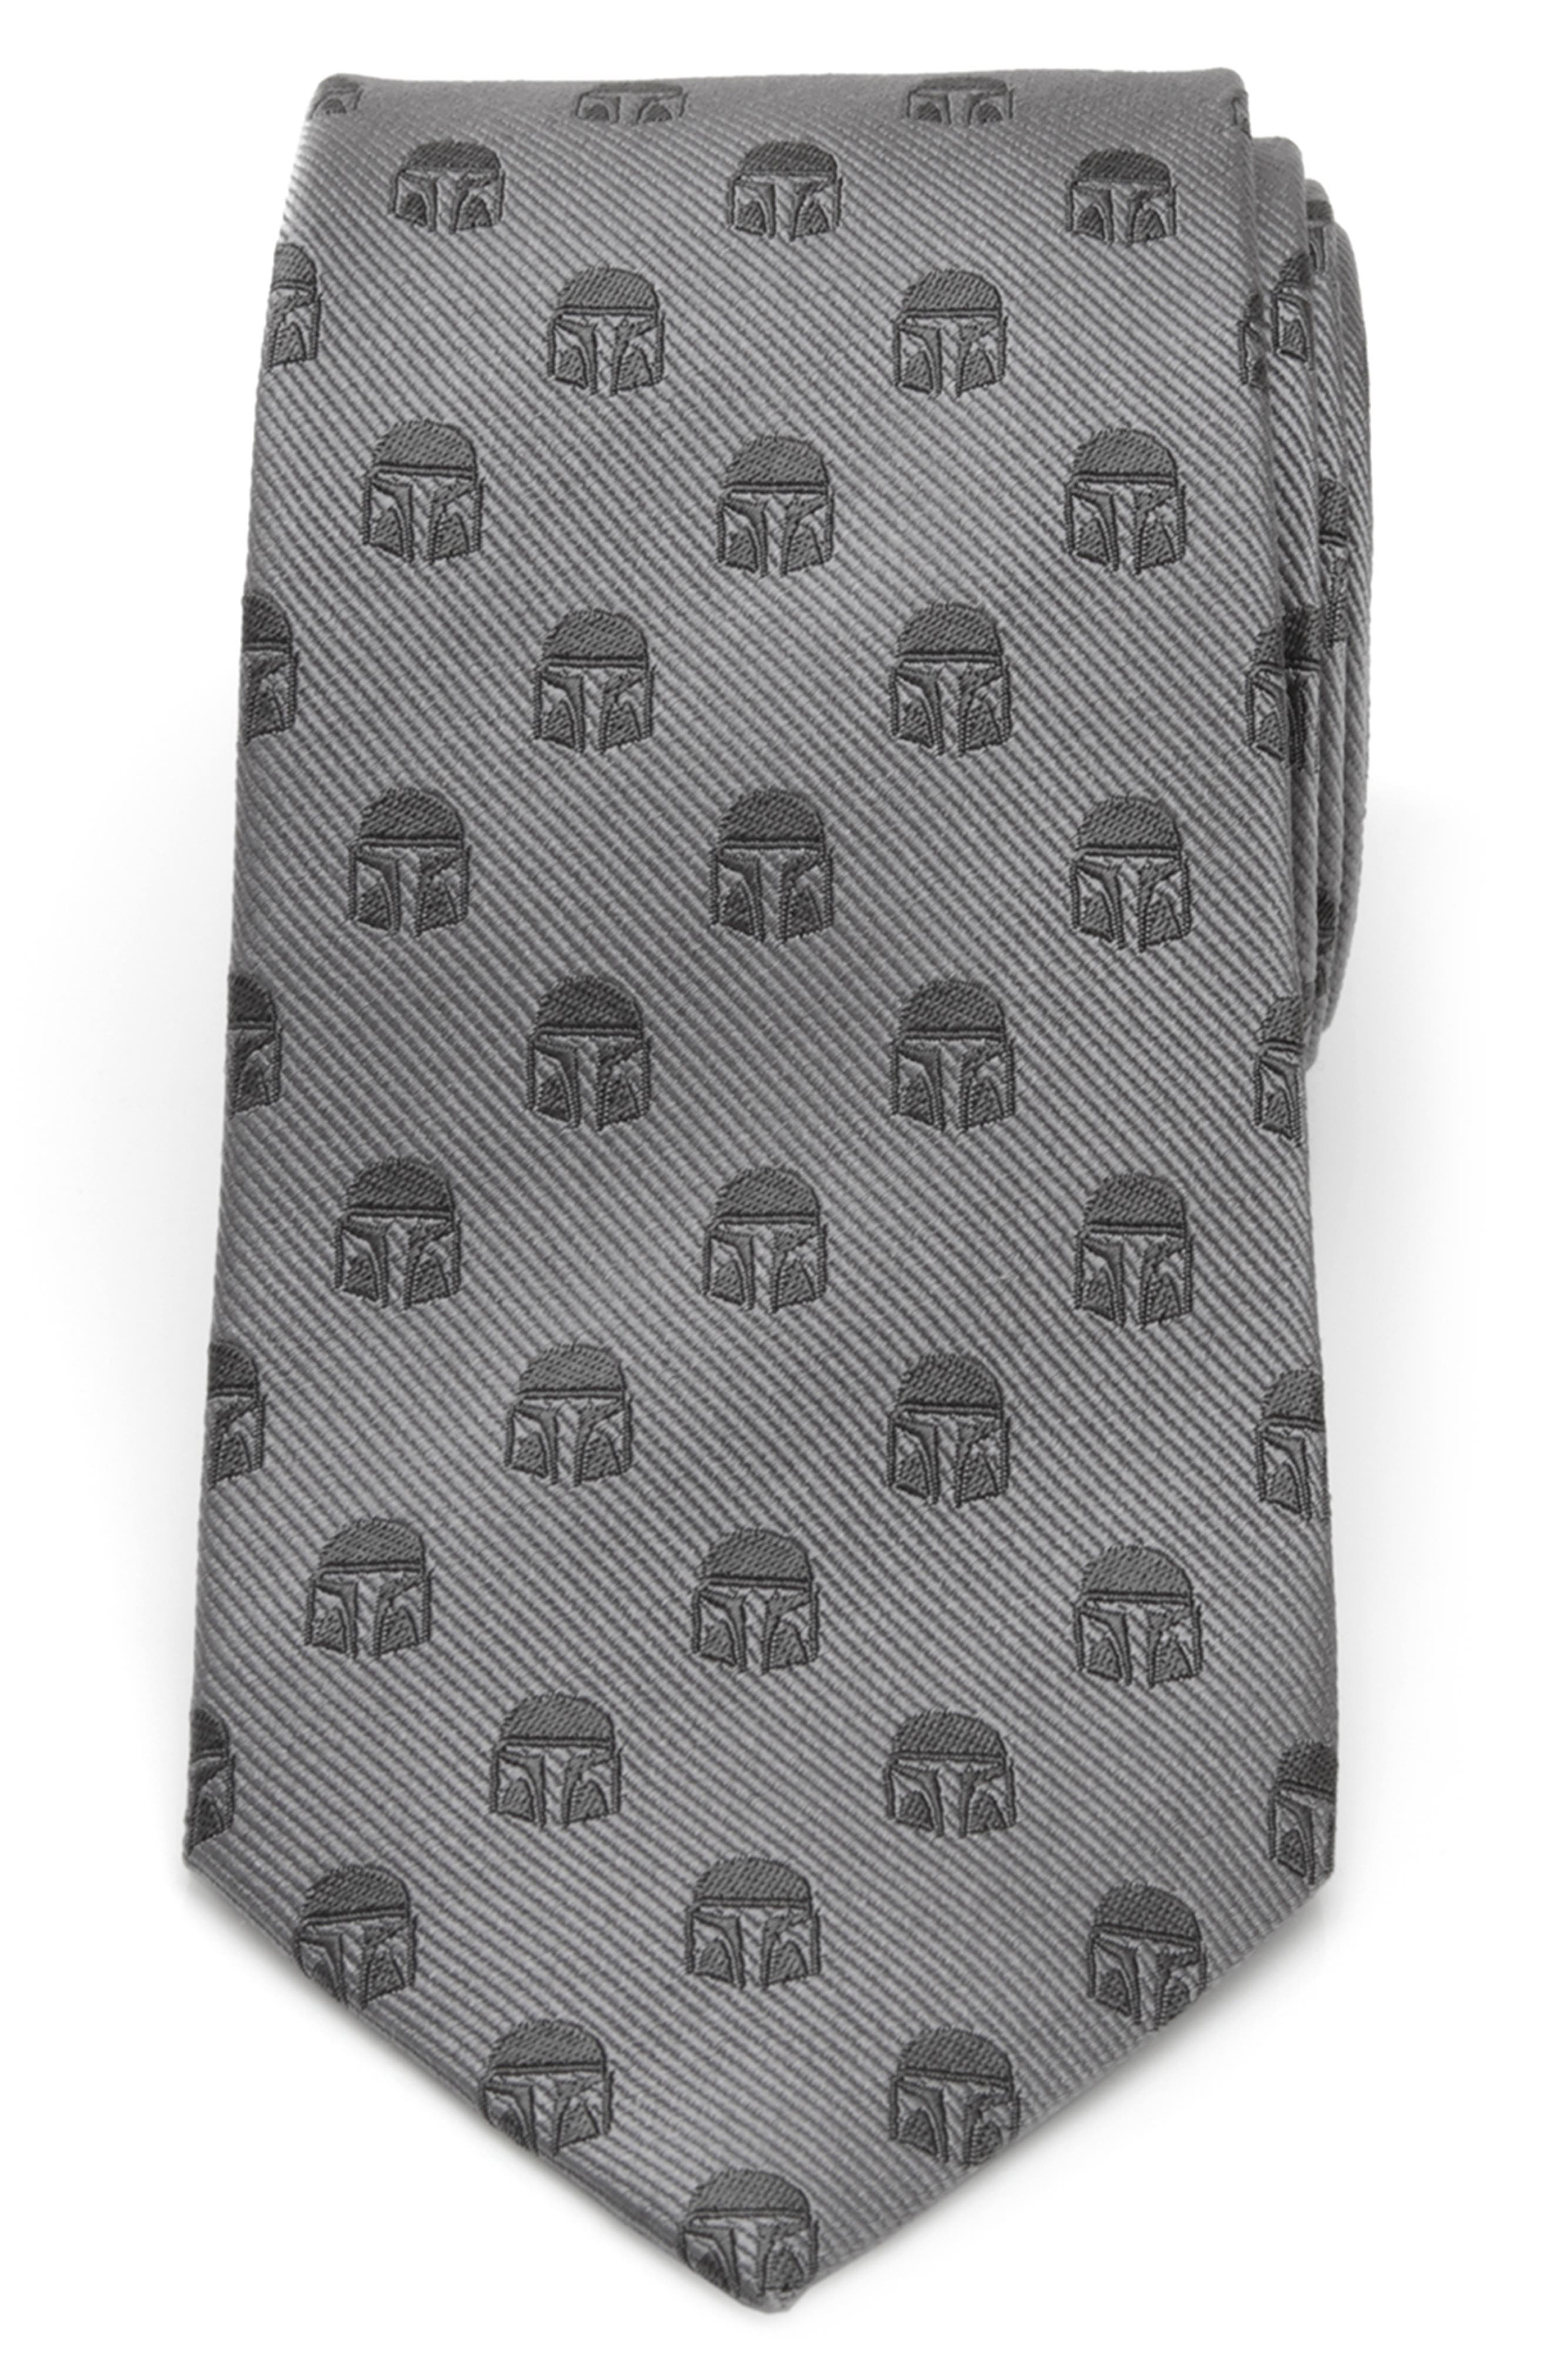 For the guy who\\\'s always on the job, this silk tie is dotted with helmets just like the ones the Mandalorian never take off. Style Name: Cufflinks, Inc. Star Wars Mandalorian Helmet Silk Tie. Style Number: 6171448. Available in stores.